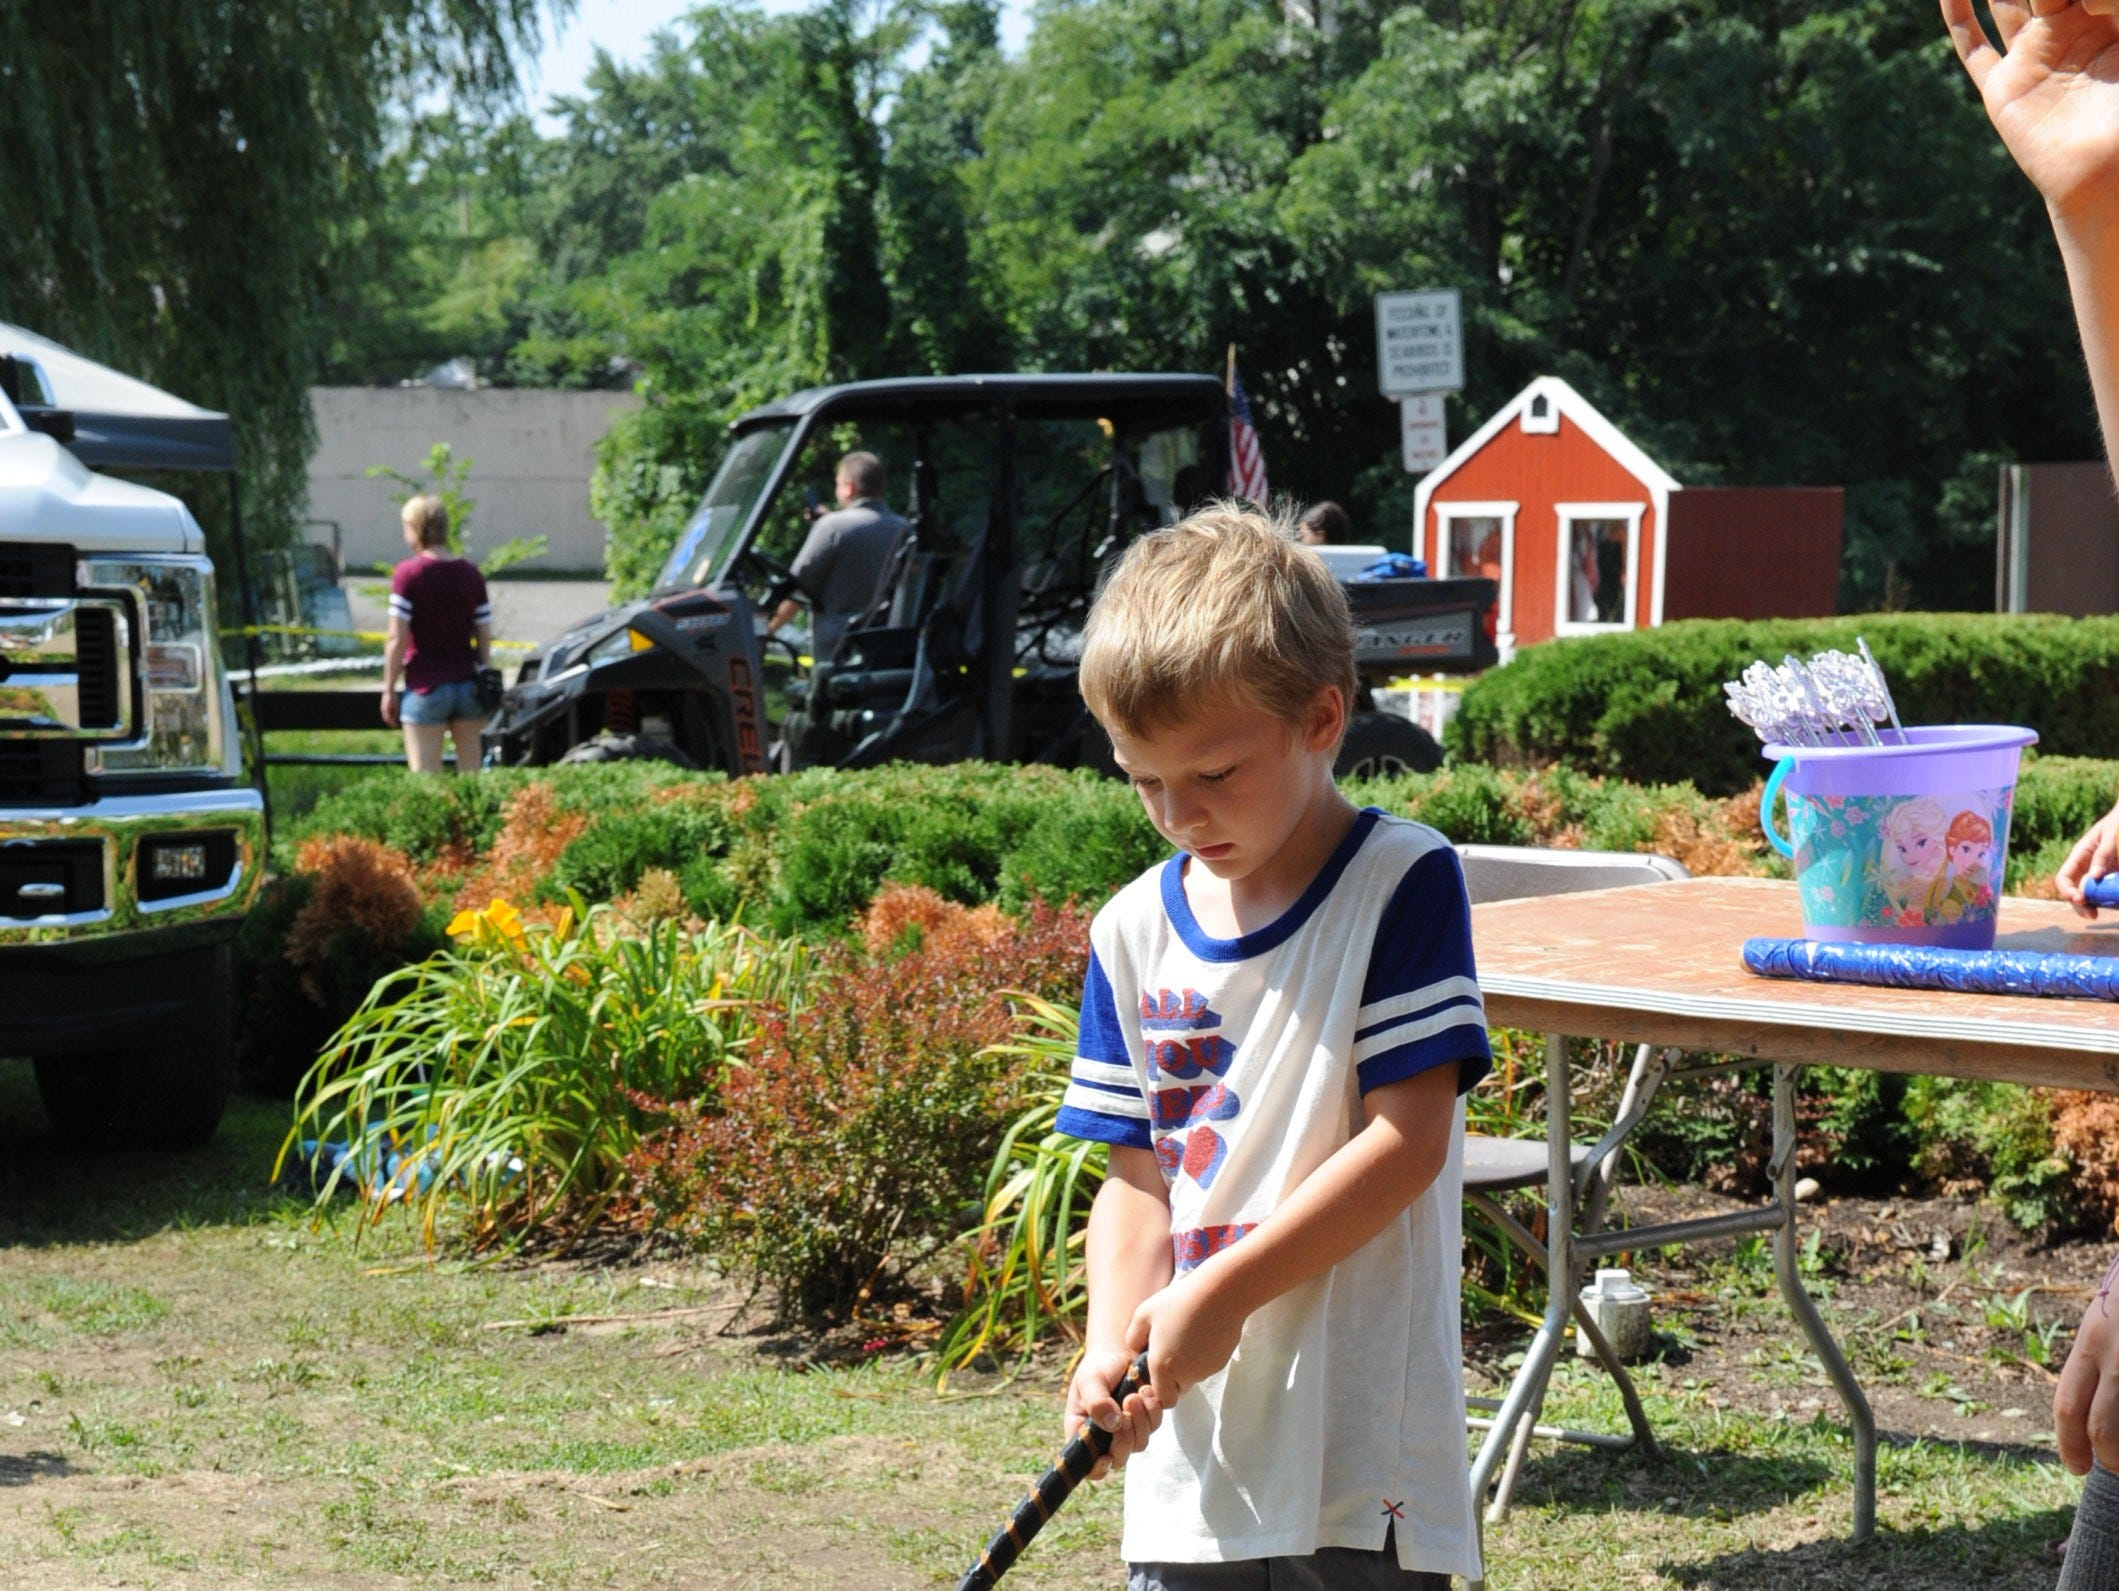 Eddie Parker practices his putting skills at Milford Memories.